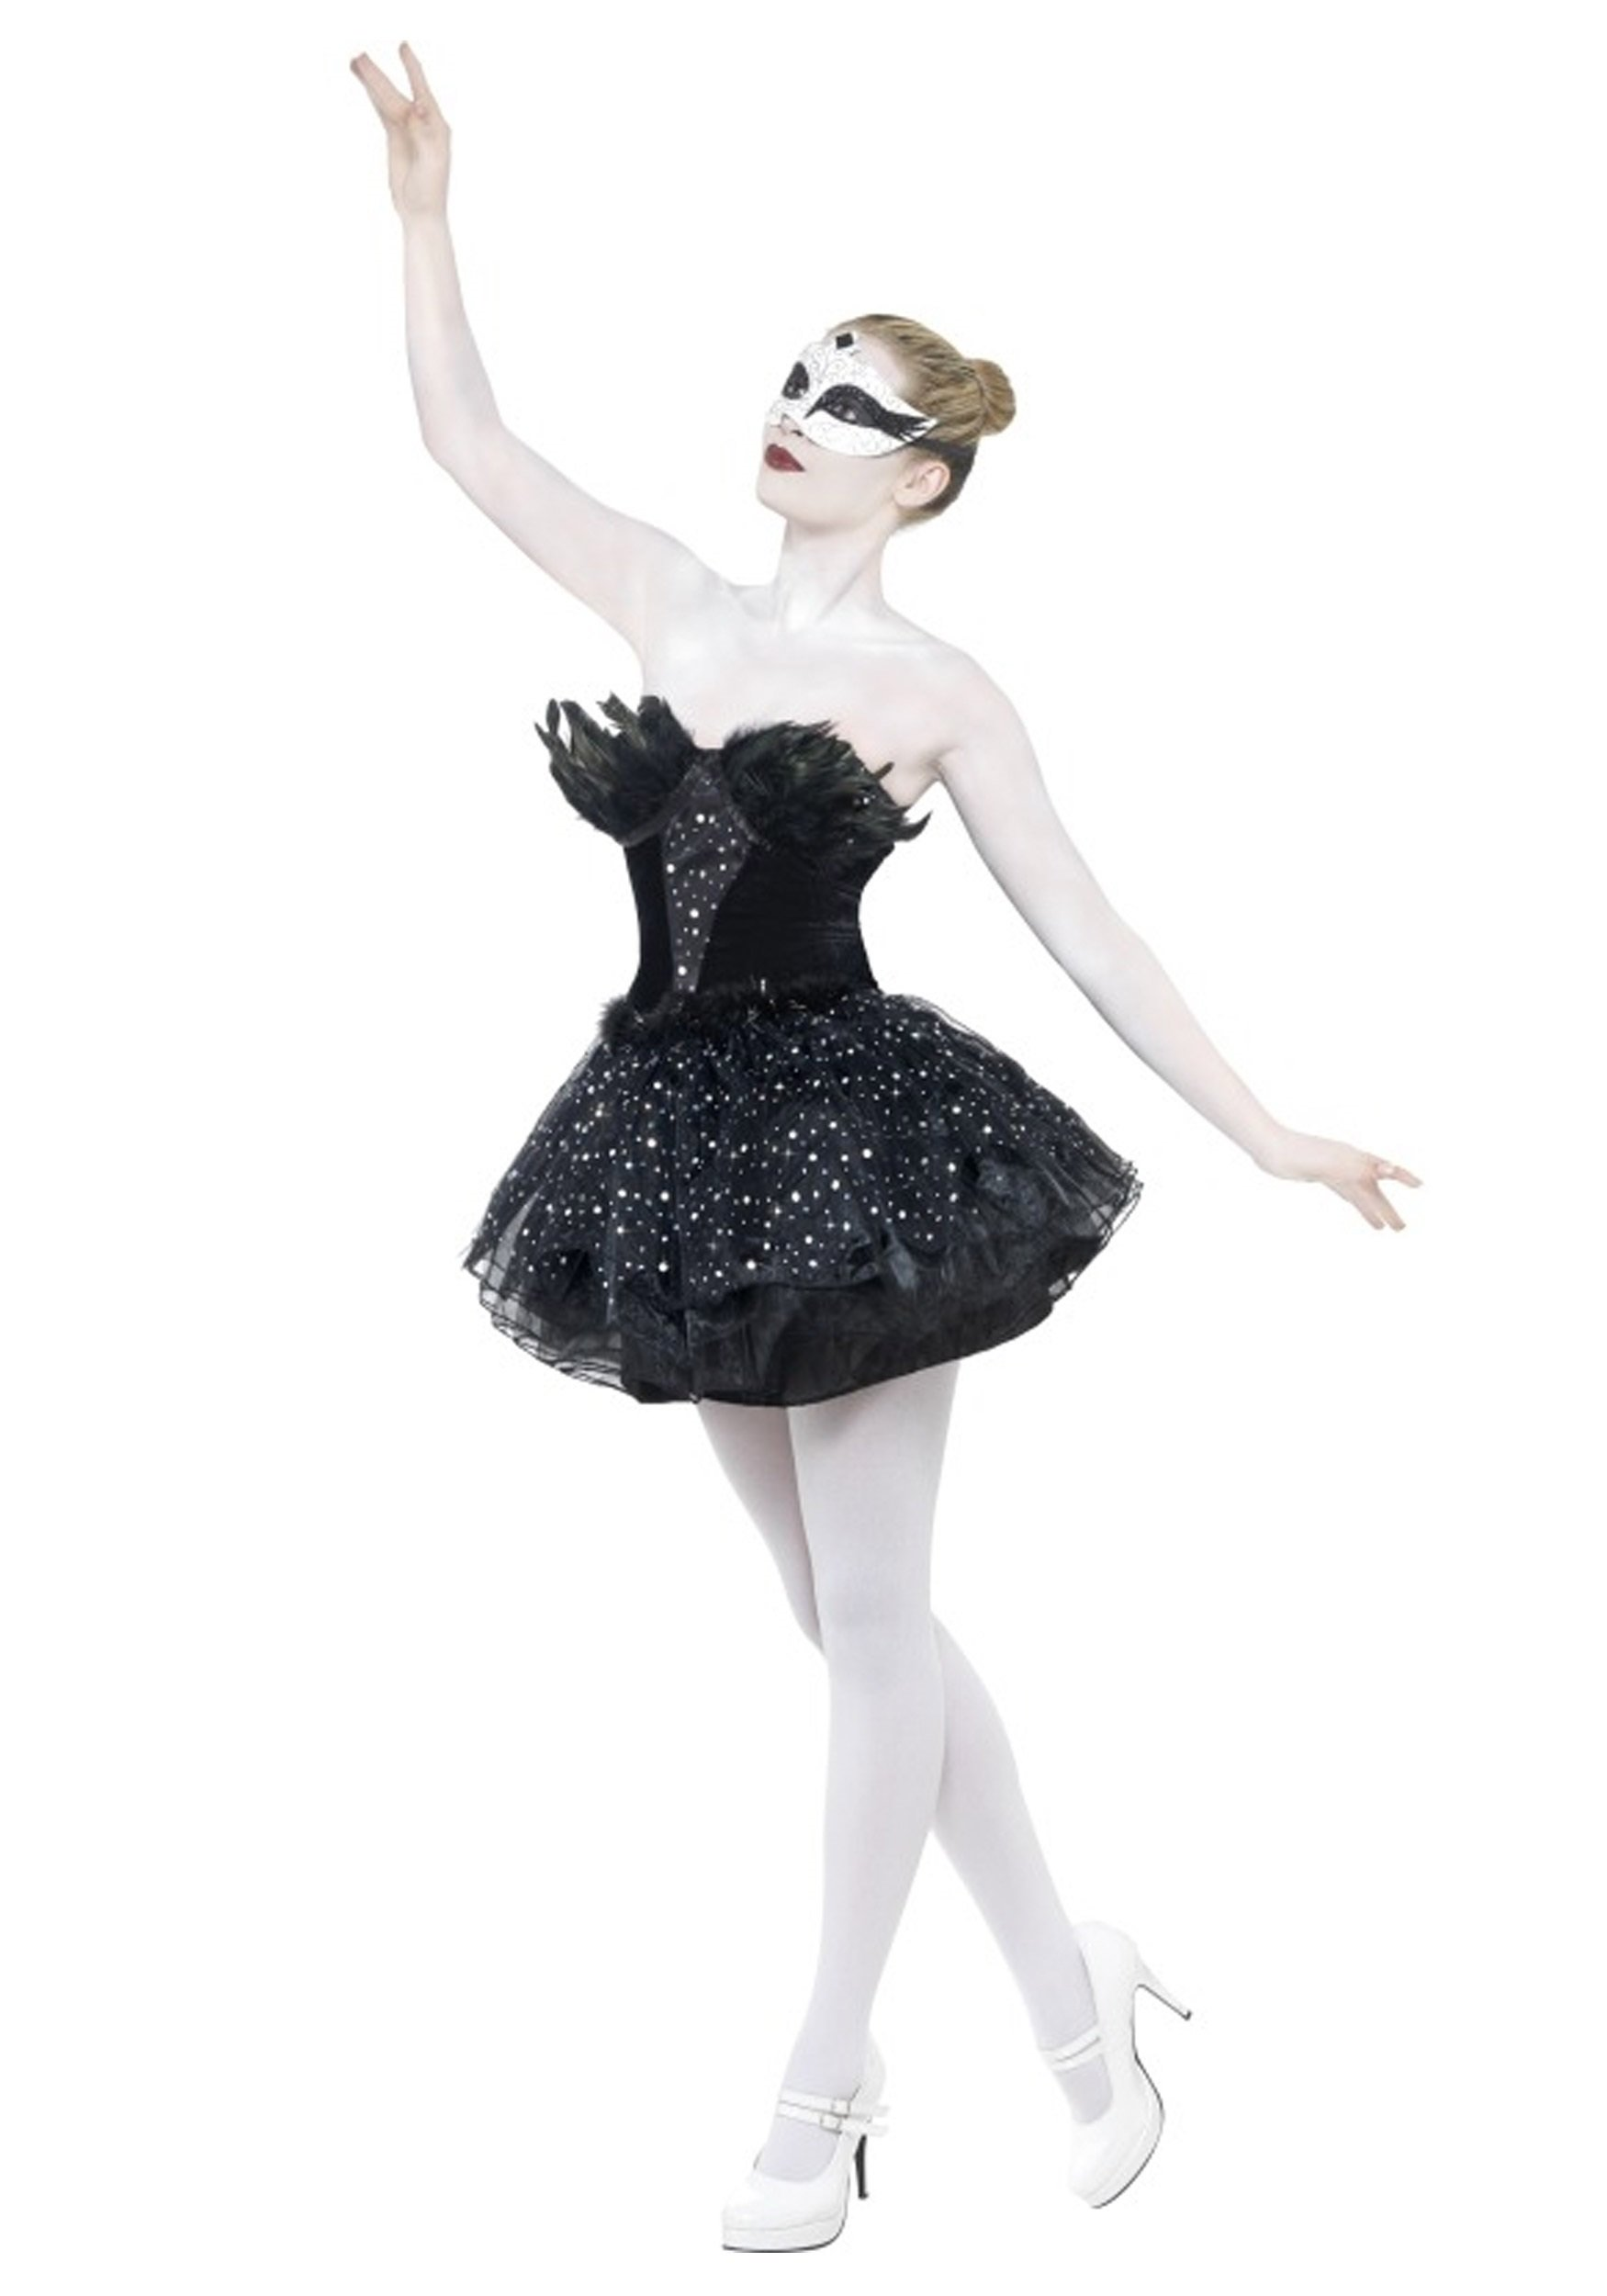 10 Lovable Masquerade Costume Ideas For Women gothic swan masquerade costume 2020